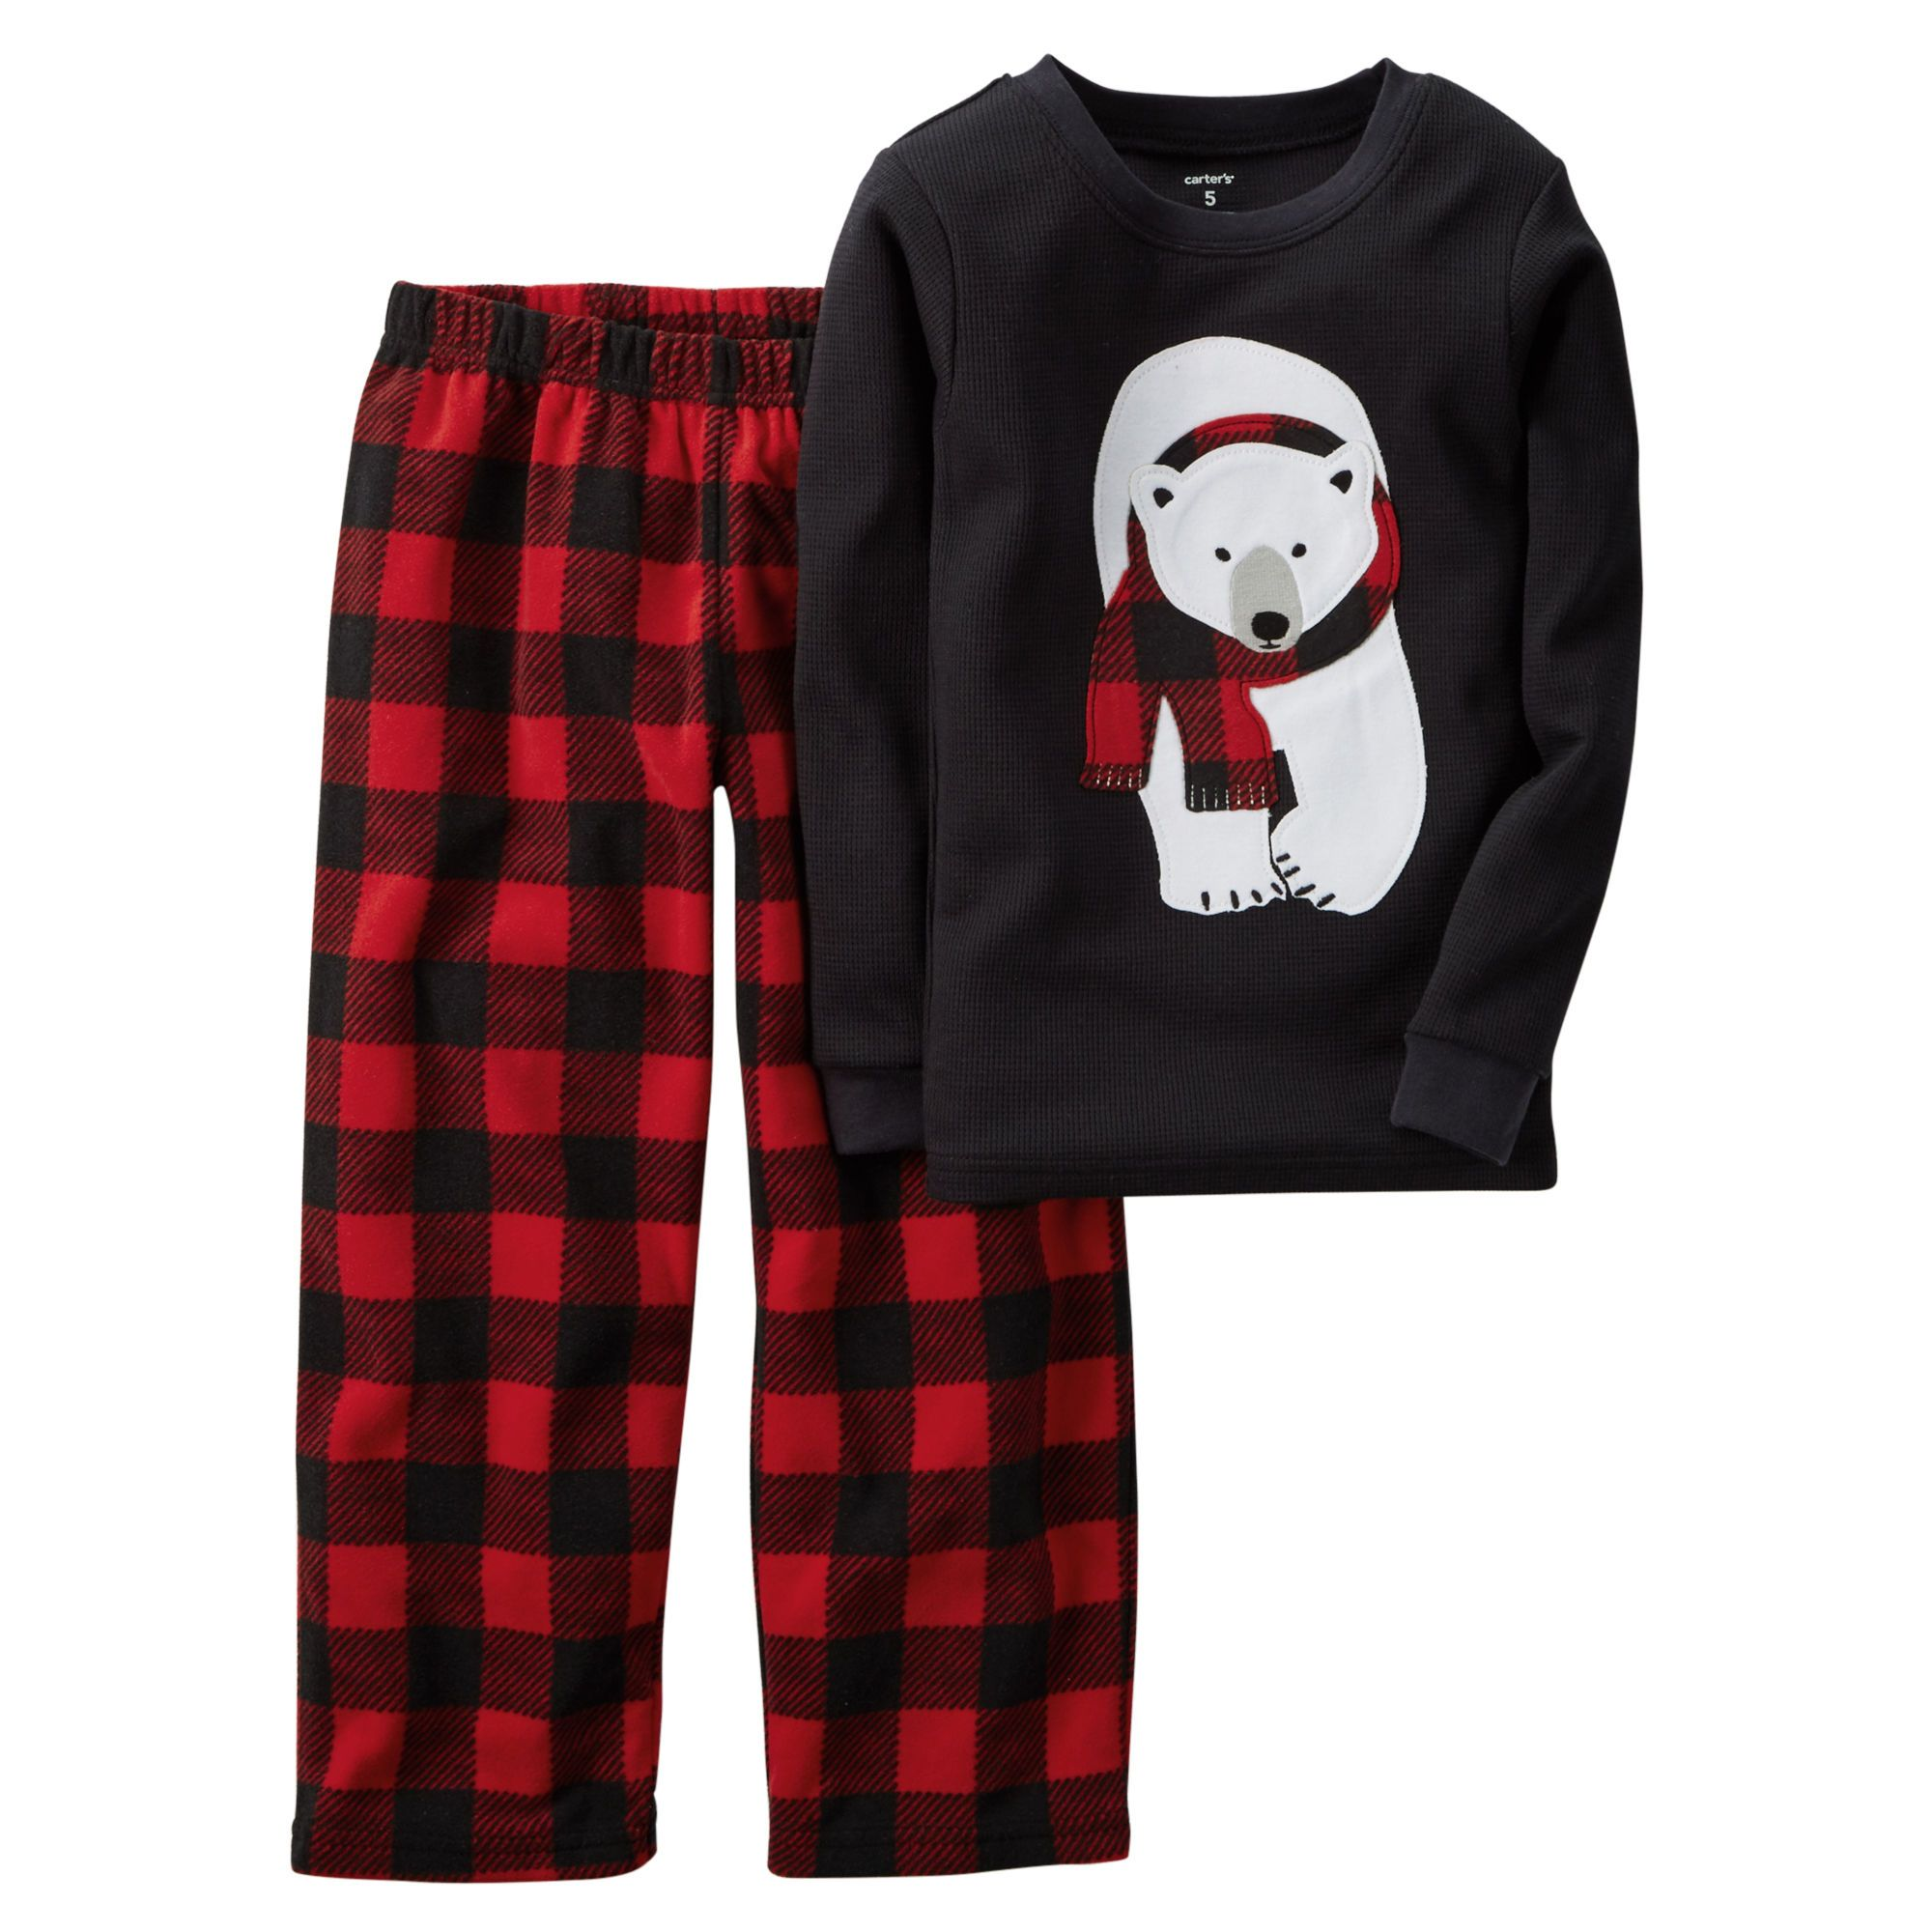 2-Piece Thermal & Fleece PJs | Canada, Kid and Baby boy